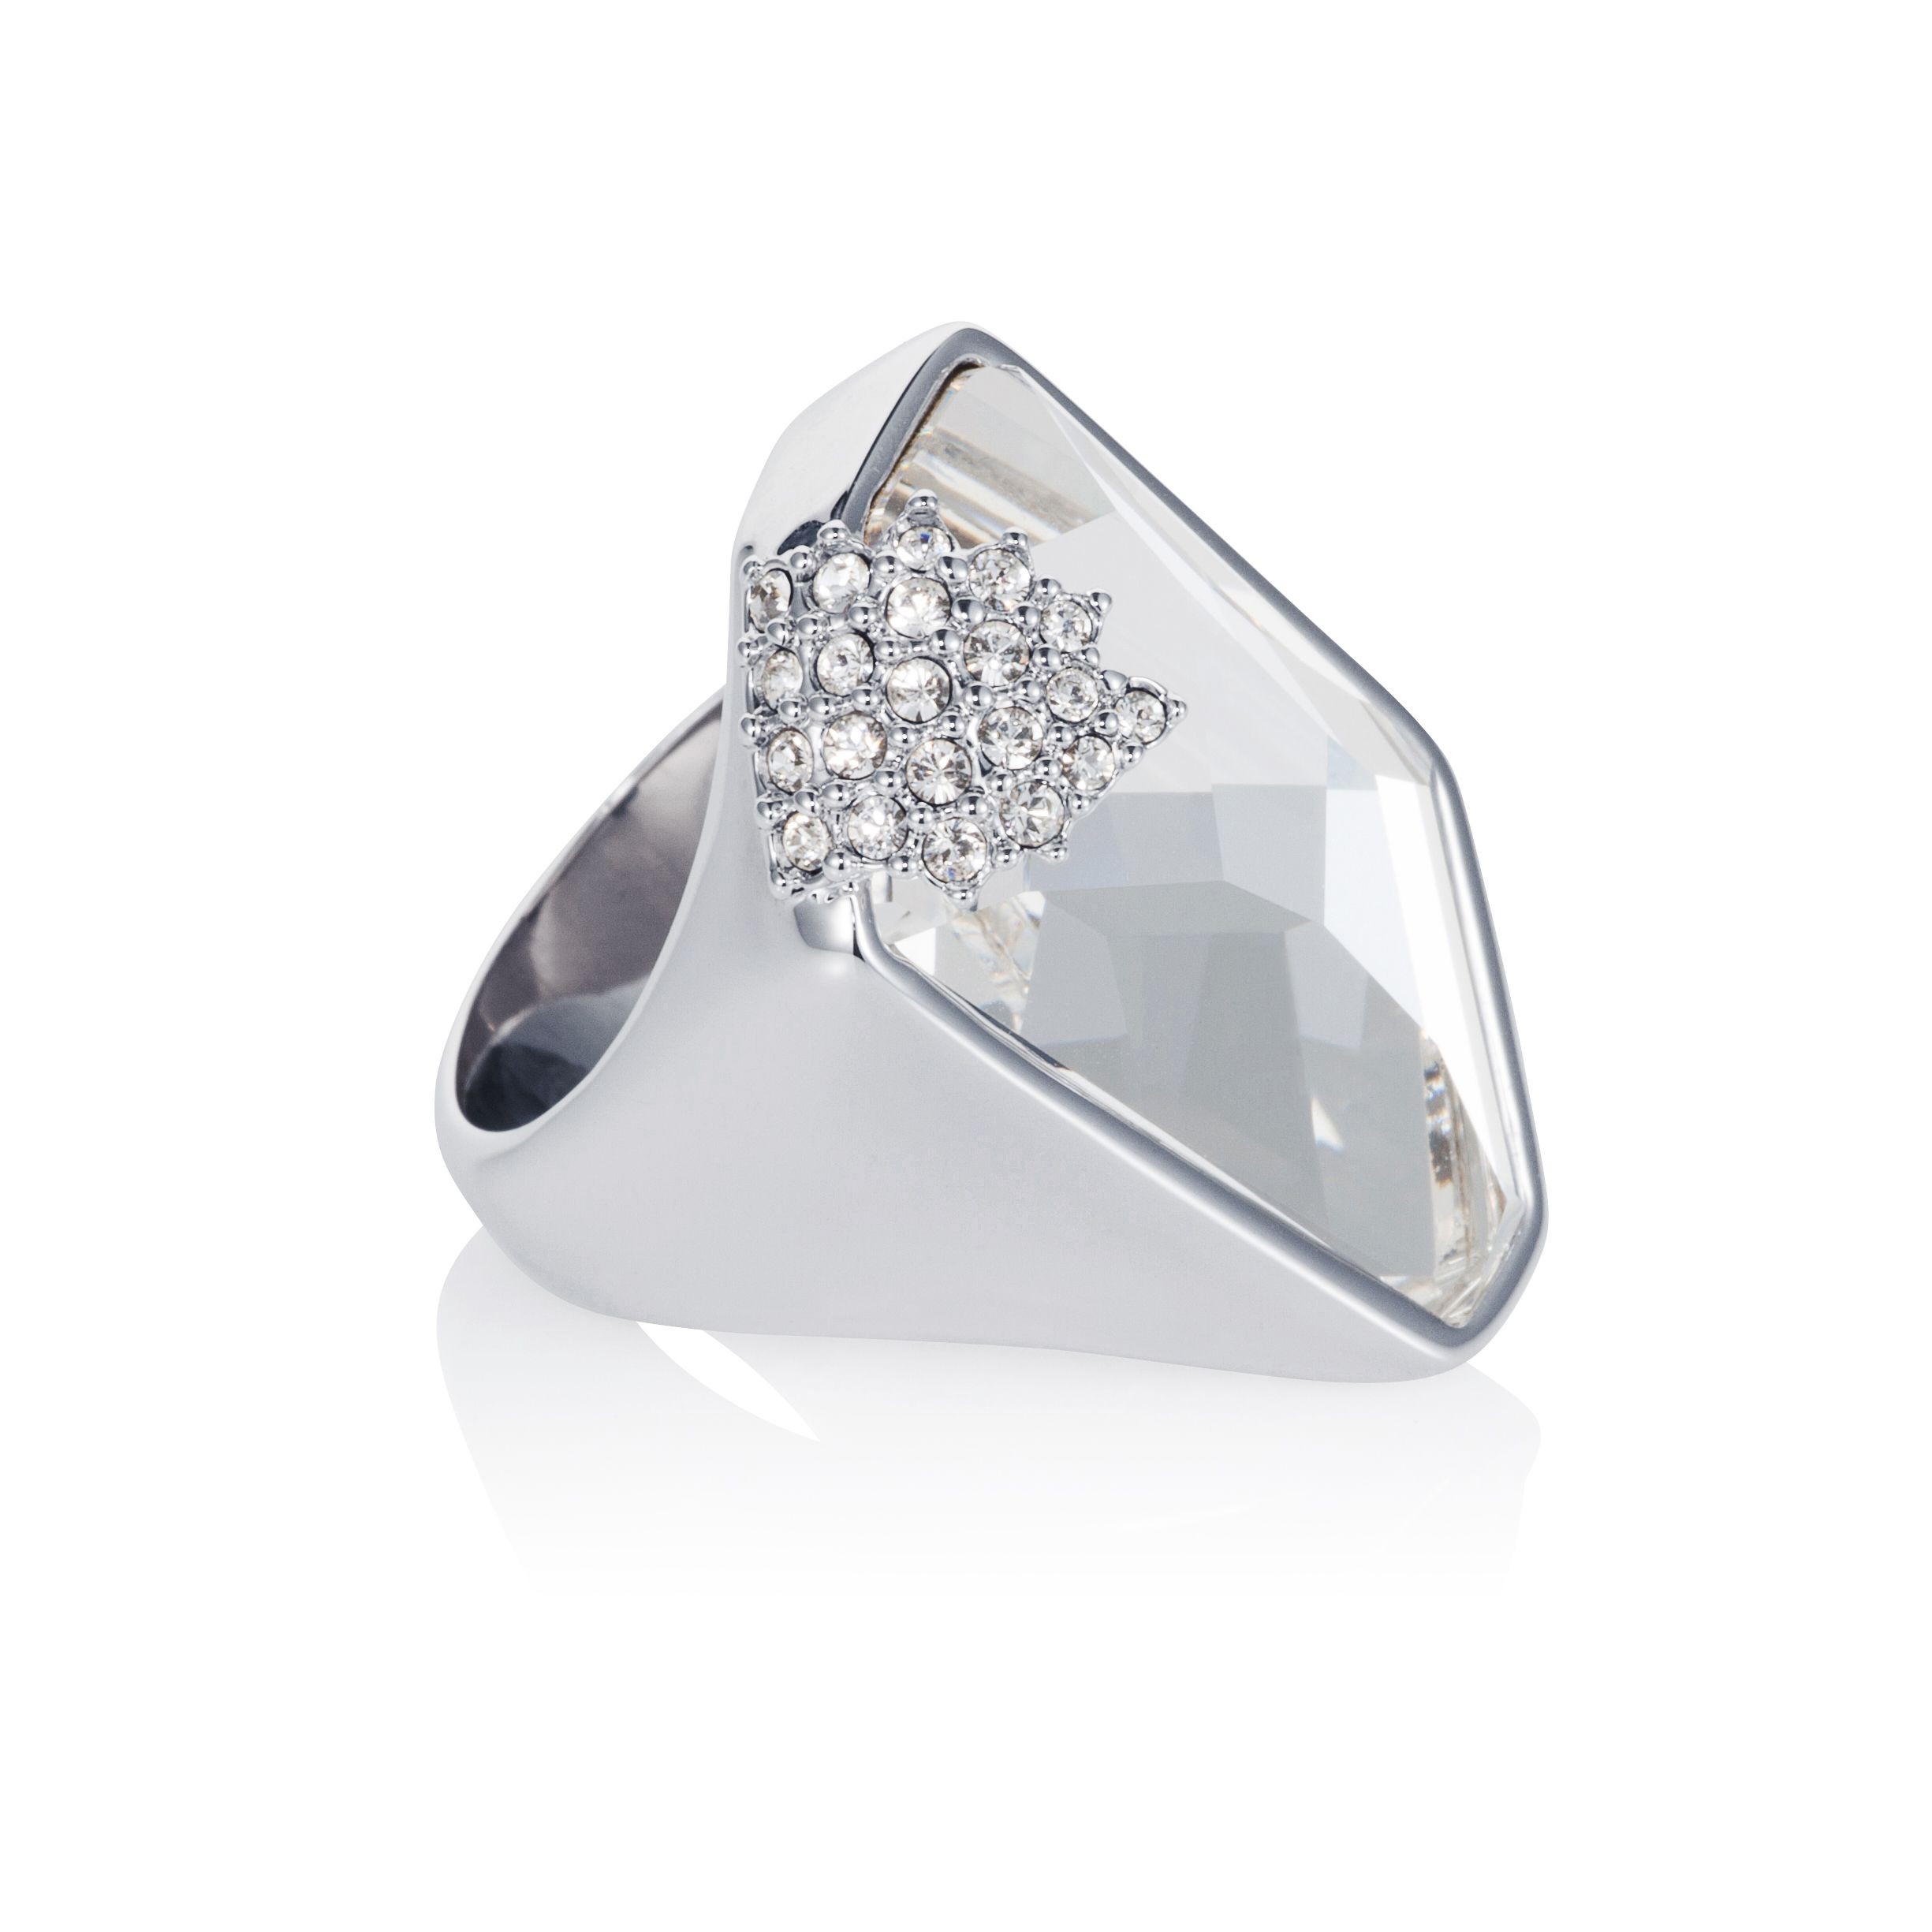 Rhodium plated titania grand galactic cut ring